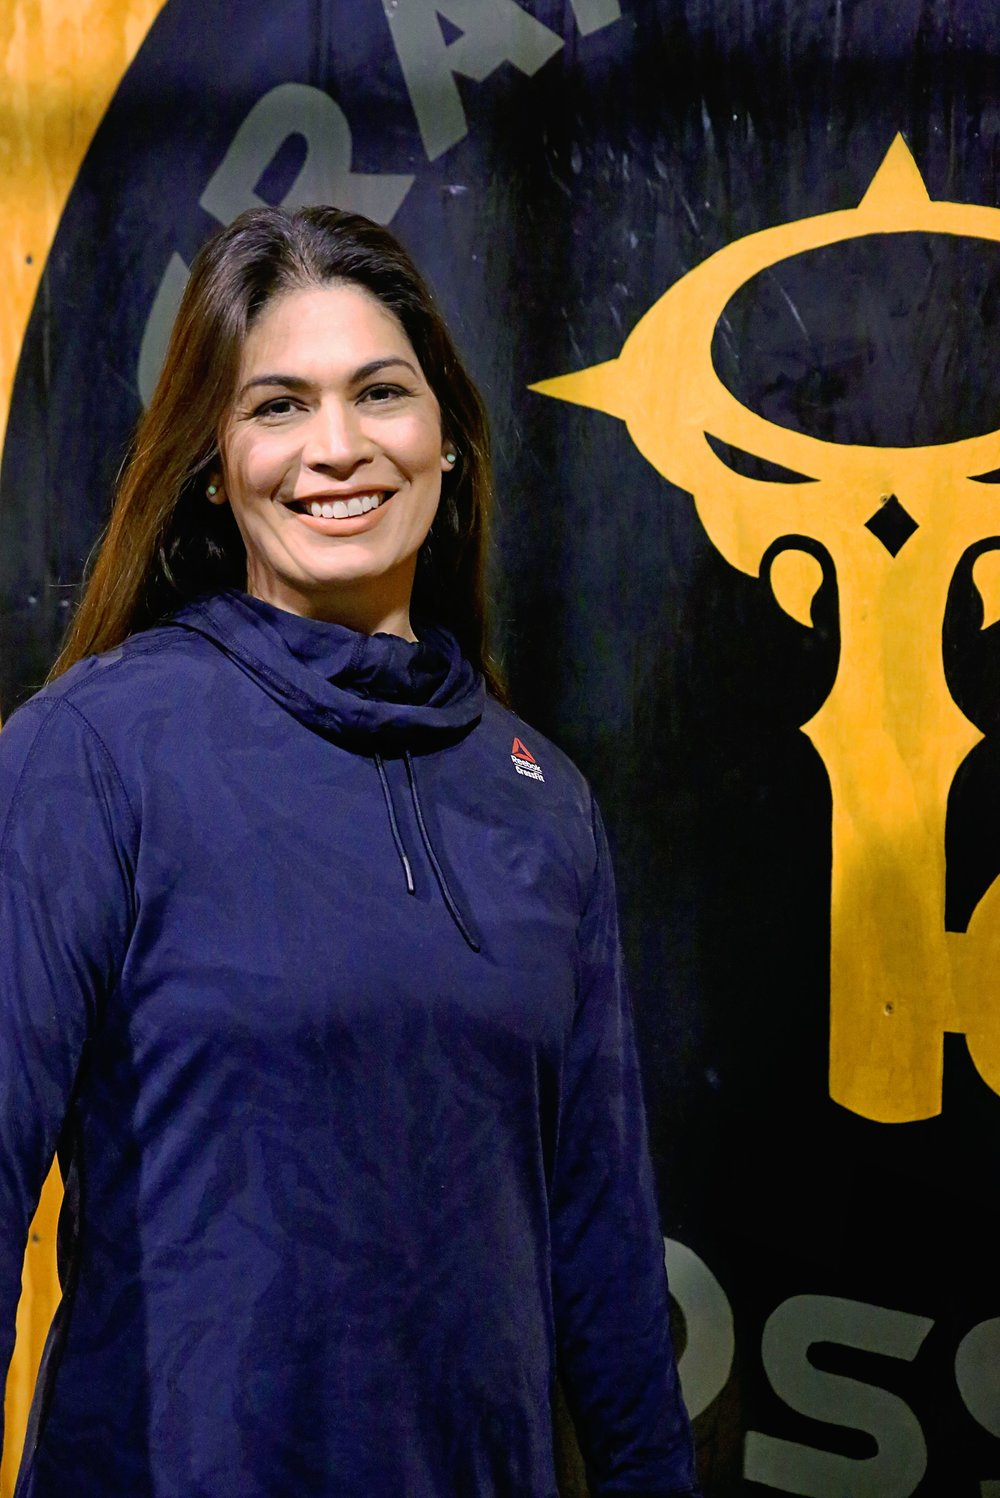 "Kat de Leon-Lantto - Coach/personal trainer/marketing- CrossFit Level 1- CrossFit Gymnastics- USA Weightlifting Sports Performance Coach Level 1- Certified Personal Trainer (ACE)- Certified Group Exercise Instructor (AFAA)- Indoor Cycling & Kettlebell Instructor (NETA)- Sport Yoga (NESTA) & Pound® InstructorKat has worked in the fitness industry off and on since the age of 19. She will soon approach 20 years in the field! Though she holds a Bachelor's degree in Art Studio from the University of California at Santa Barbara (UCSB), her calling has always been in fitness.Kat got her start working in the fitness industry as Navy Fitness Coordinator. In addition to coordinating mainstream fitness classes and personal training, she helped coordinate and run semi-annual physical readiness assessments and administer remedial physical fitness training sessions for active duty sailors.Kat has been a middle school and high school swim coach, practiced ""stand-up"" American Kickboxing and managed various other mainstream fitness programs."